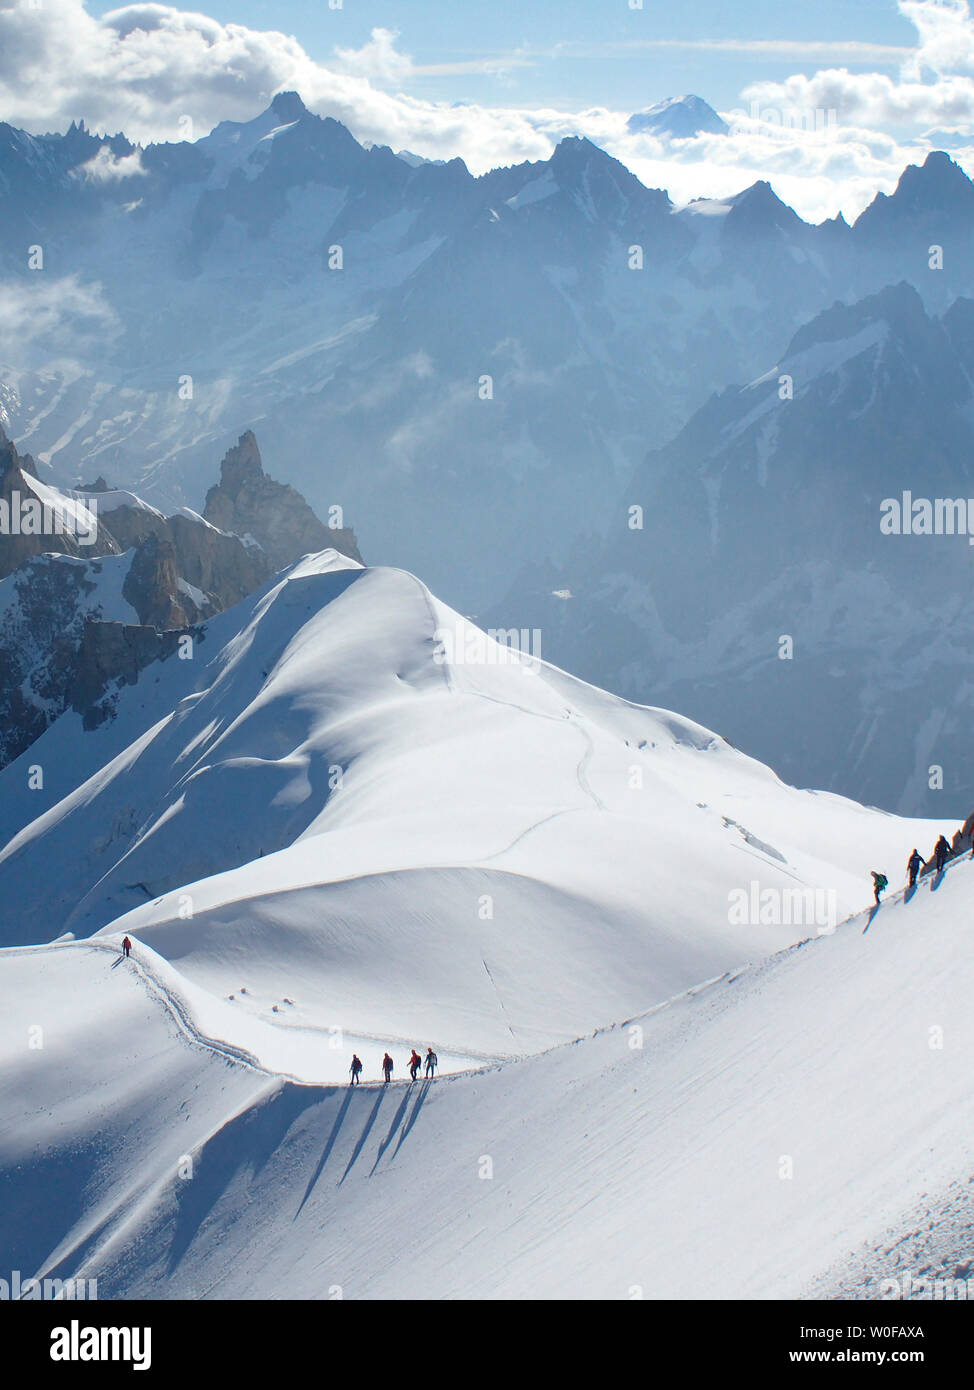 France, haute savoy, Chamonix, Mont blanc range, some alpinists are hiking on the snow edge of the aiguille du midi - Stock Image